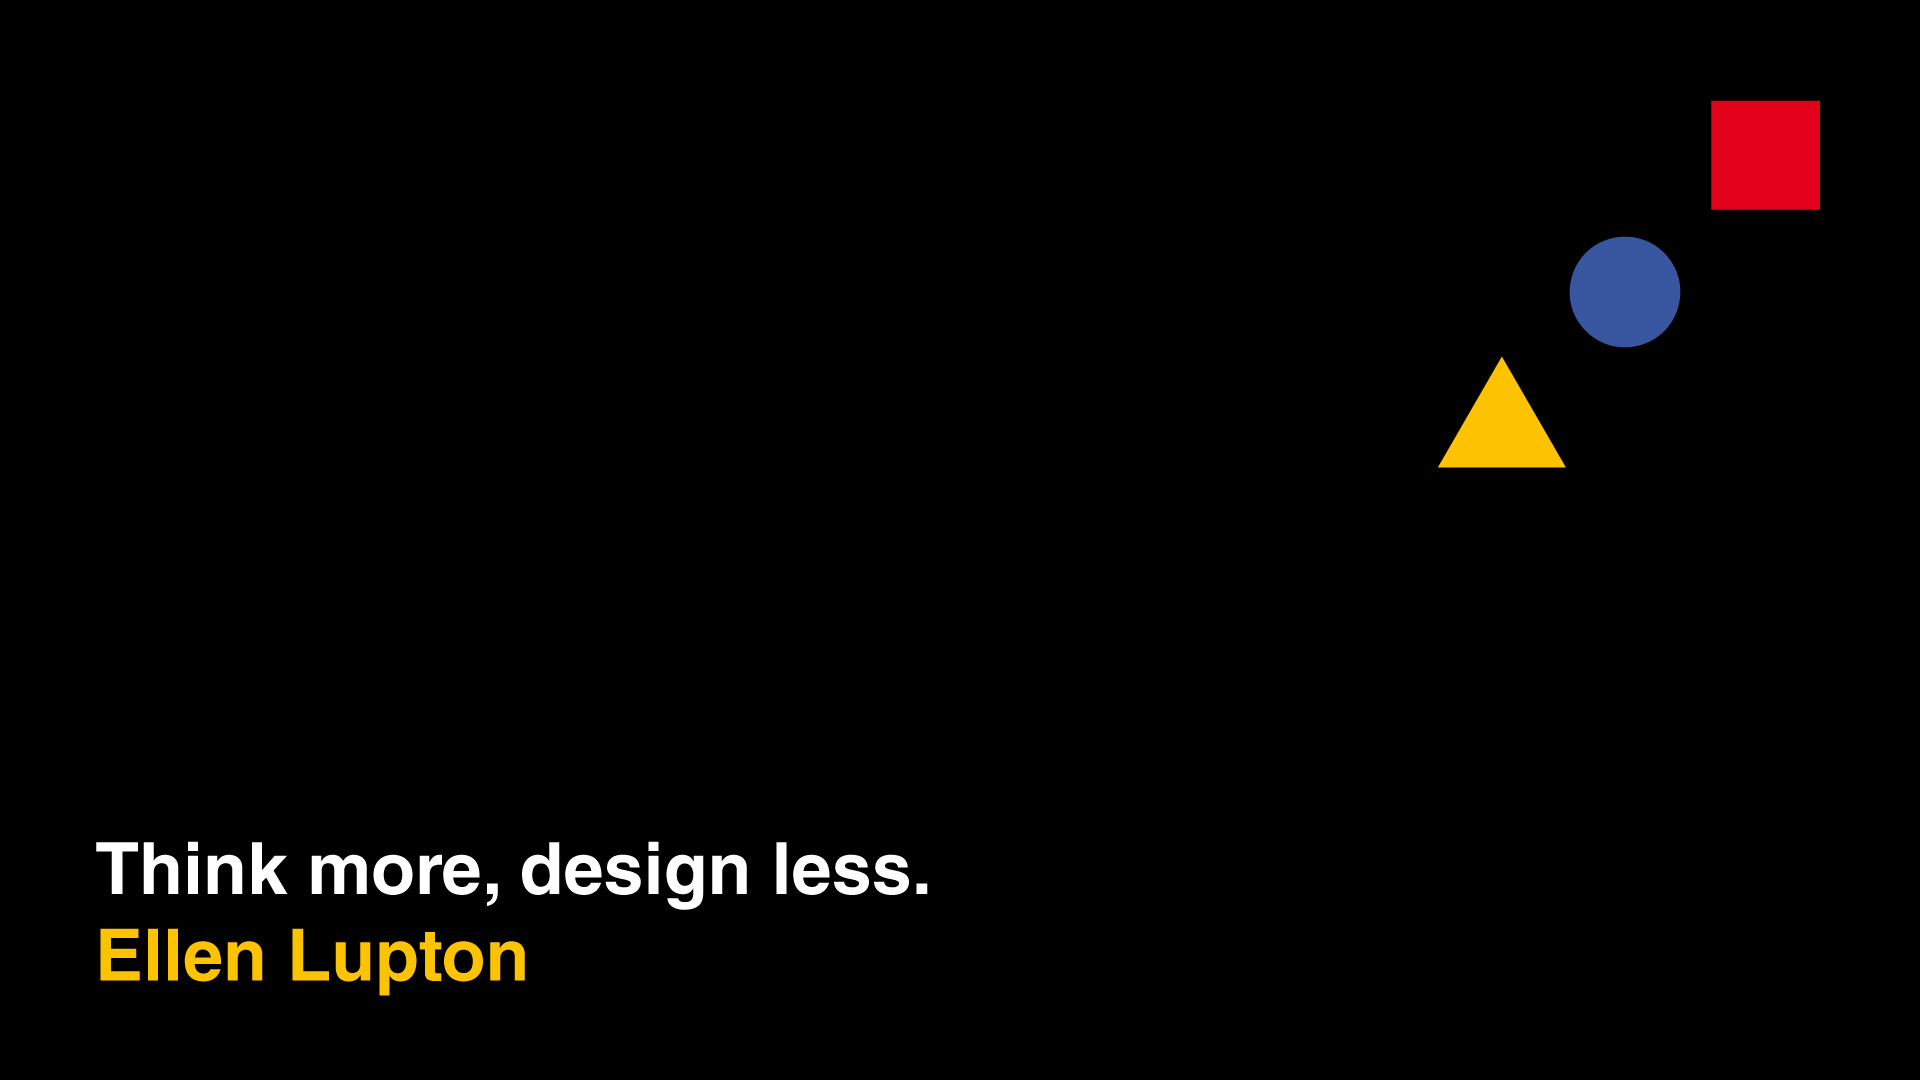 Inspirational Quotes from Famous Designers - Ellen-Lupton - Think More Design Less